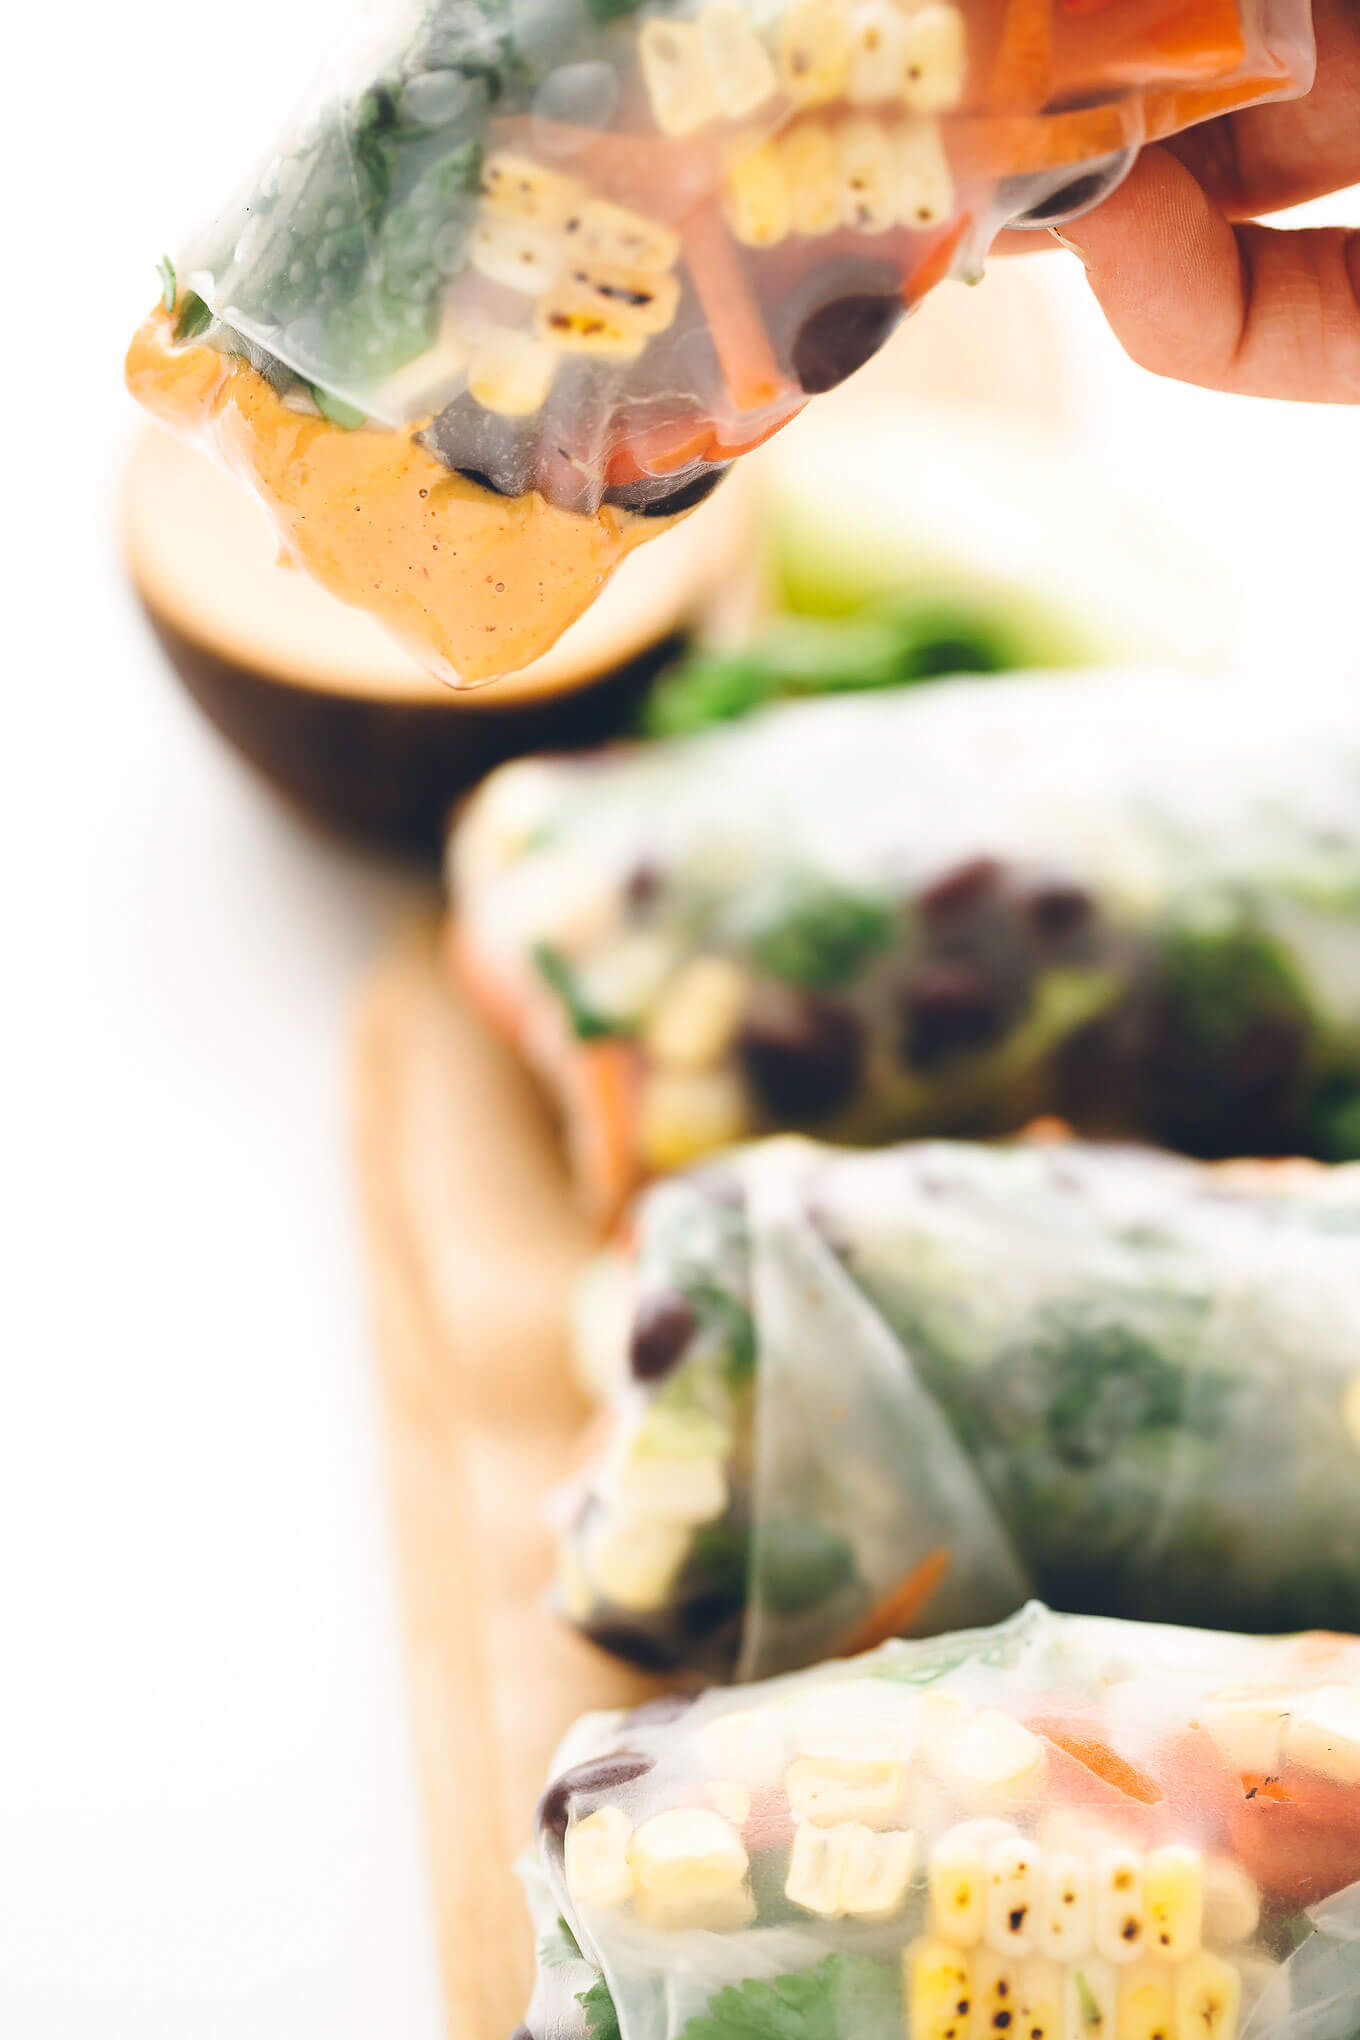 Southwest Vegan Spring Rolls with Smoky Chipotle Sauce